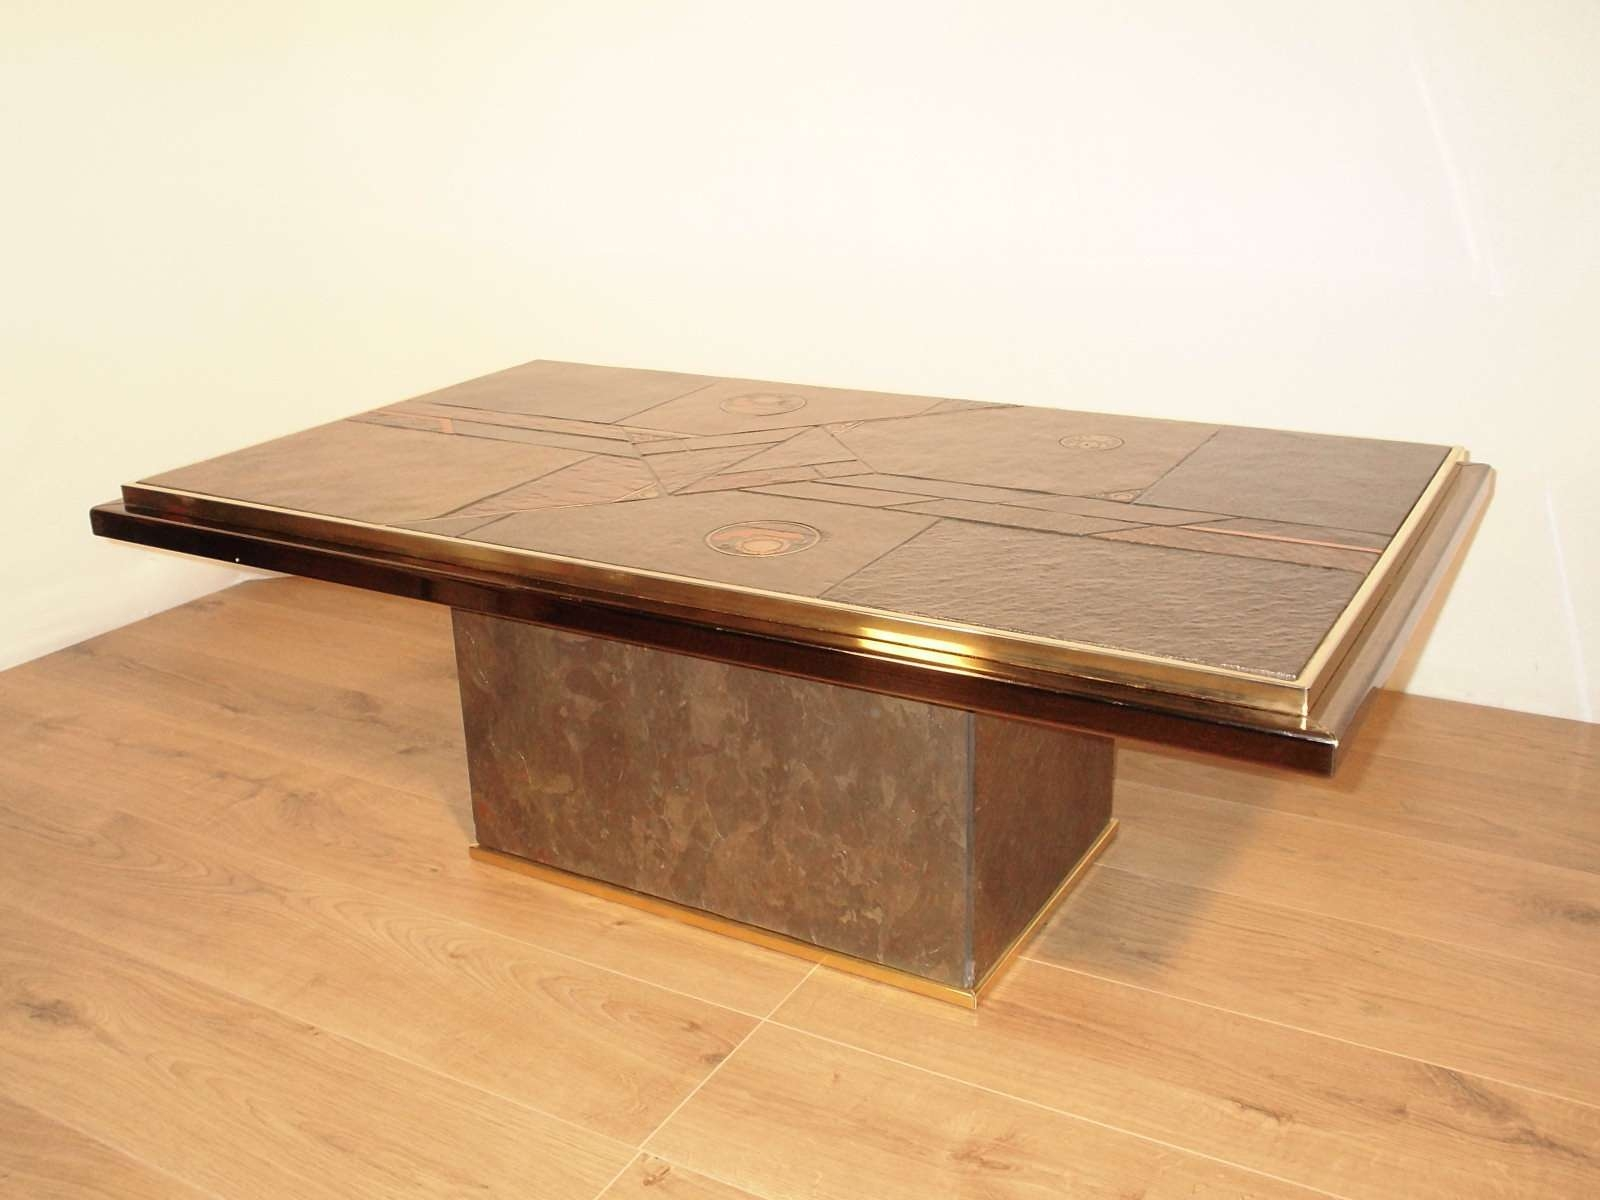 Famous Bronze Coffee Tables Within Stone And Bronze Coffee Tablepaul Kingma, 1970 For Sale At Pamono (View 5 of 20)